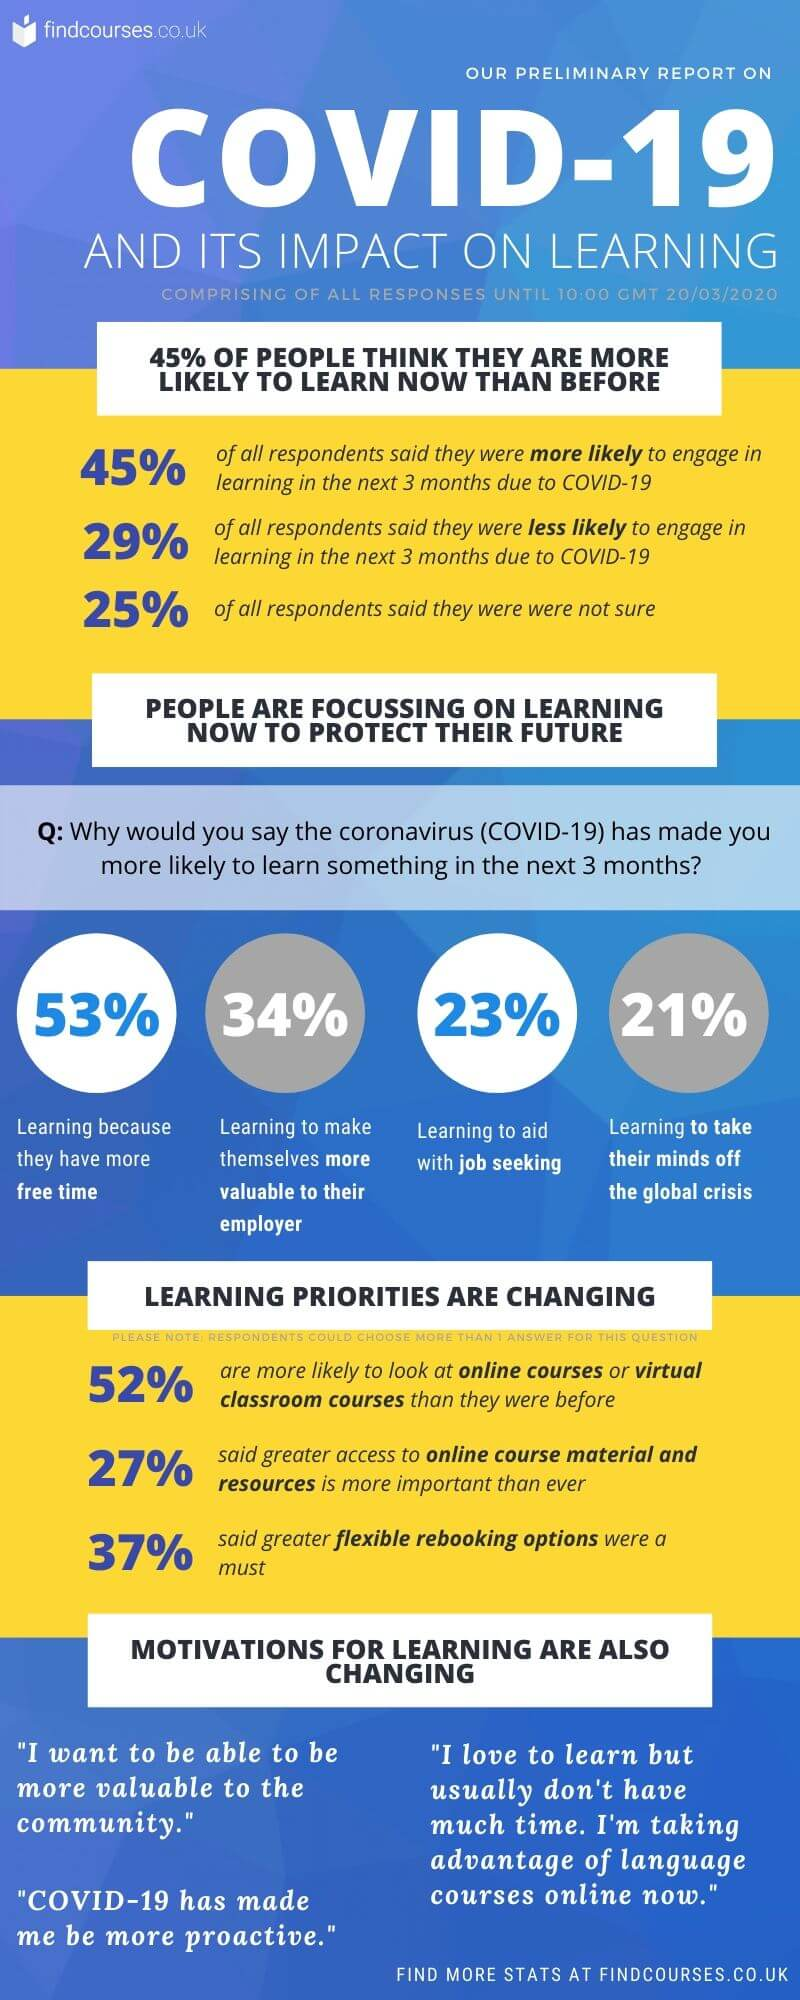 covid-19-impact-on-learning-statistics-infographic